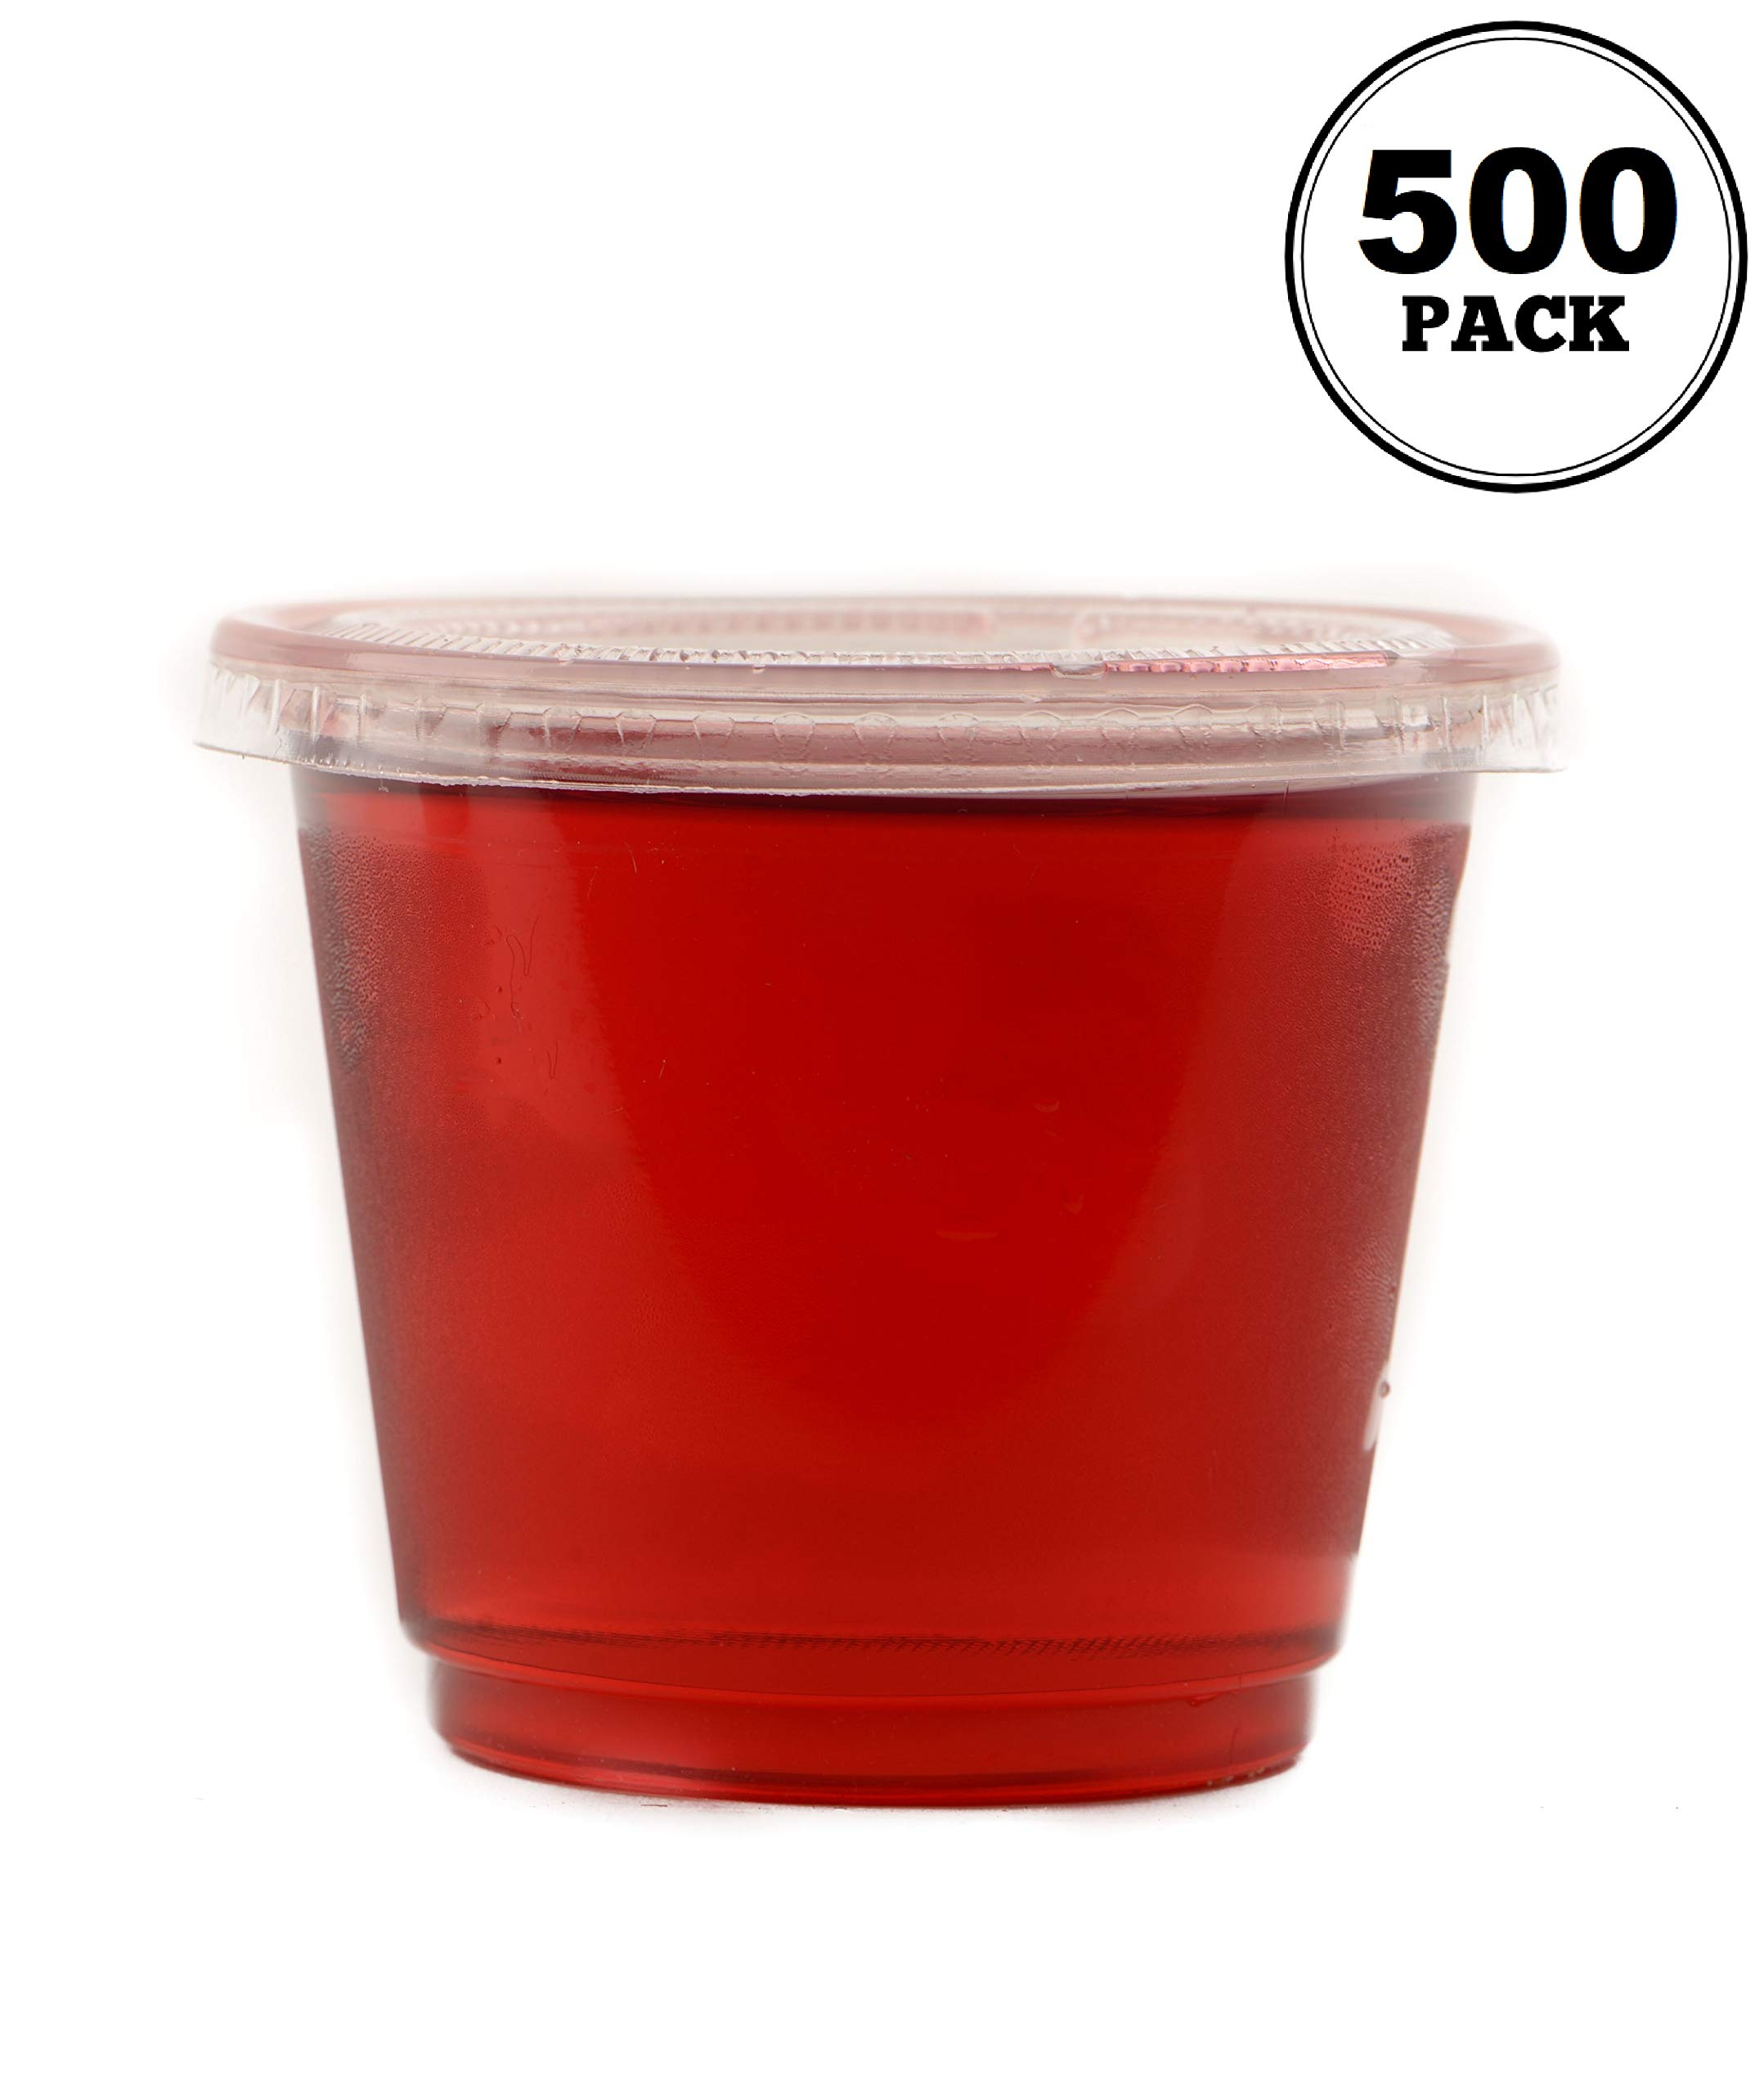 EcoQuality [500 Pack] 4 Oz Leak Proof Plastic Condiment Souffle Containers with Lids - Plastic Portion Cup with Plastic Lid Perfect for Sauces, Samples, Slime, Jello Shot, Food Storage & More! by EcoQuality